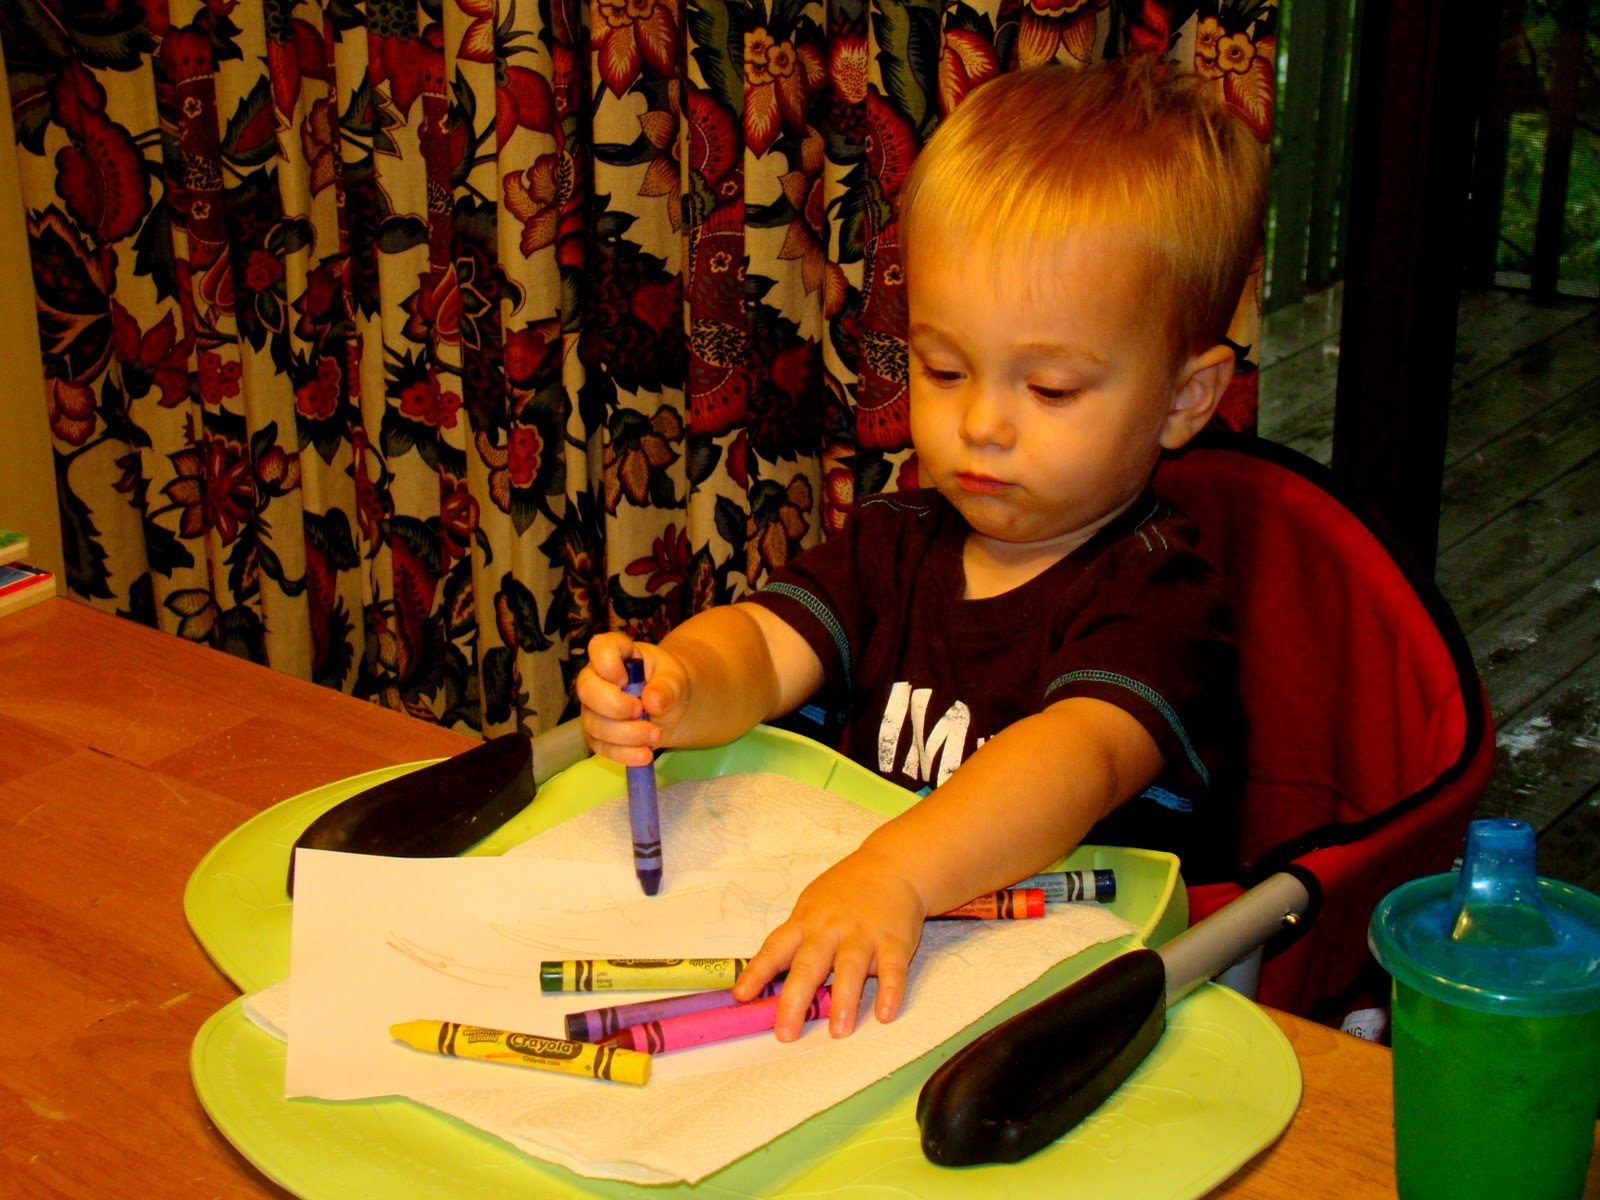 Almost Wordless Wednesday: A Whole Lotta Colorin'